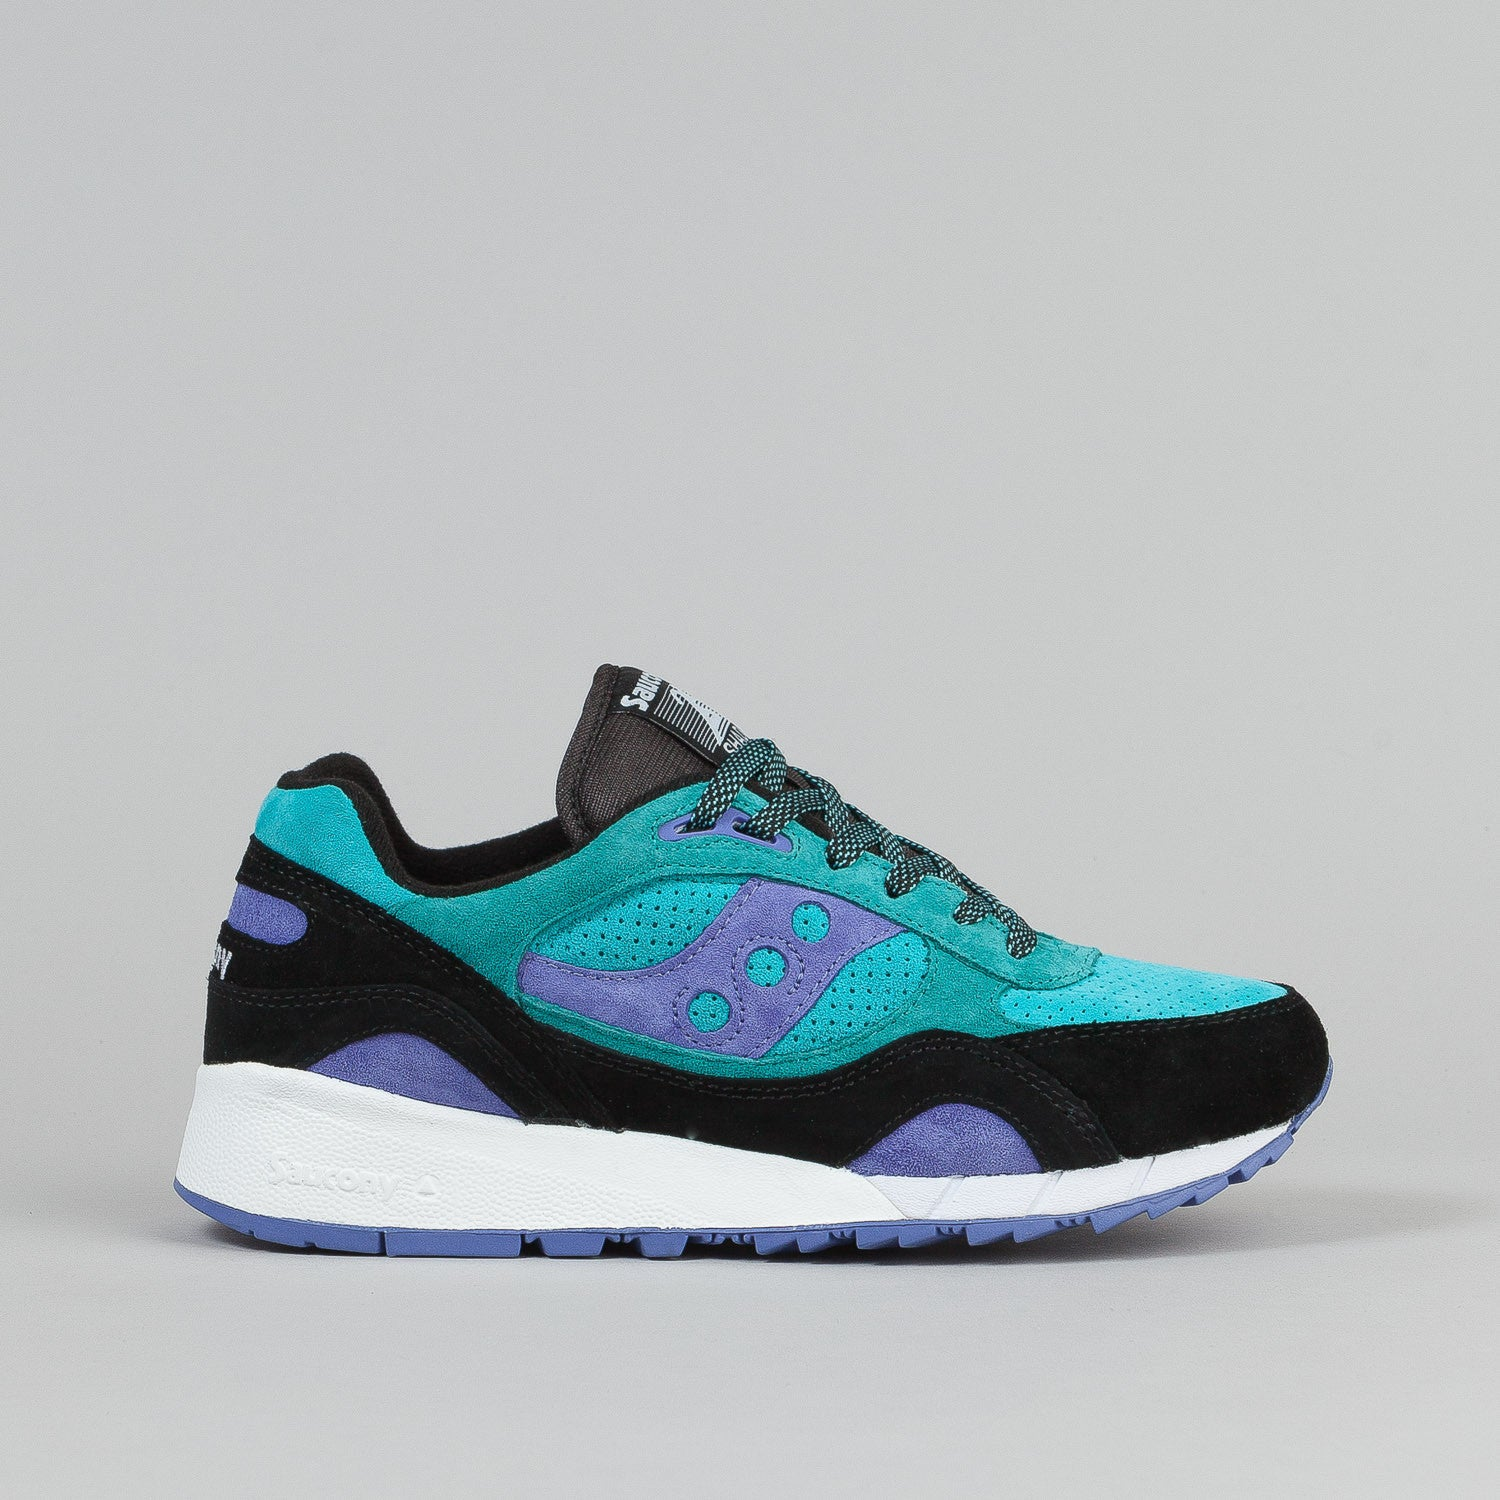 Saucony Shadow 6000 Shoes